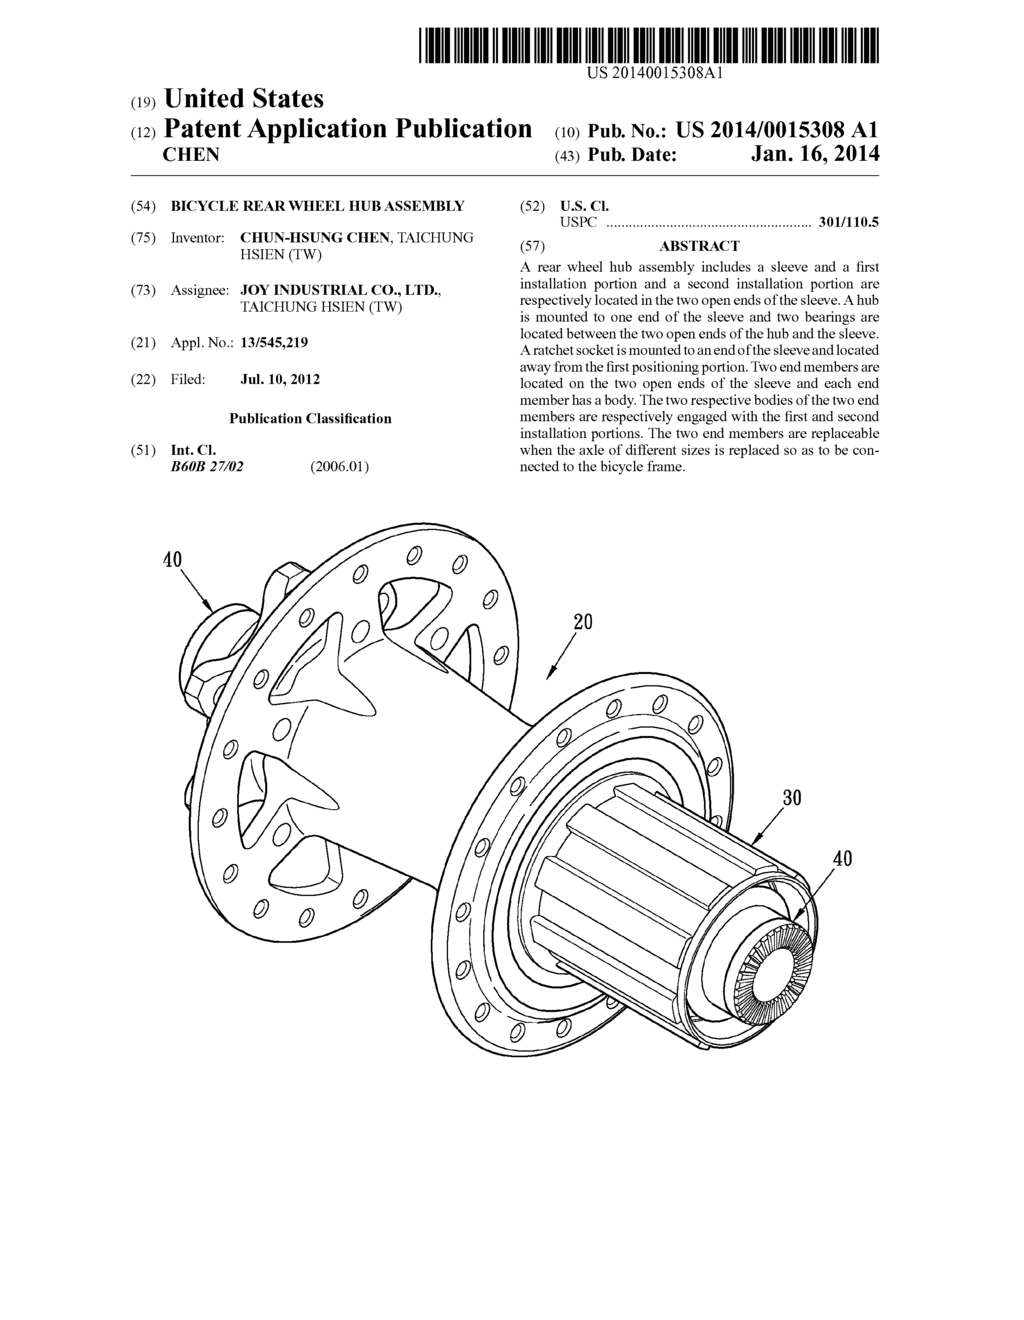 bicycle rear wheel hub assembly diagram schematic and image 01 rh patentsencyclopedia com bike parts diagram bike assembly diagram